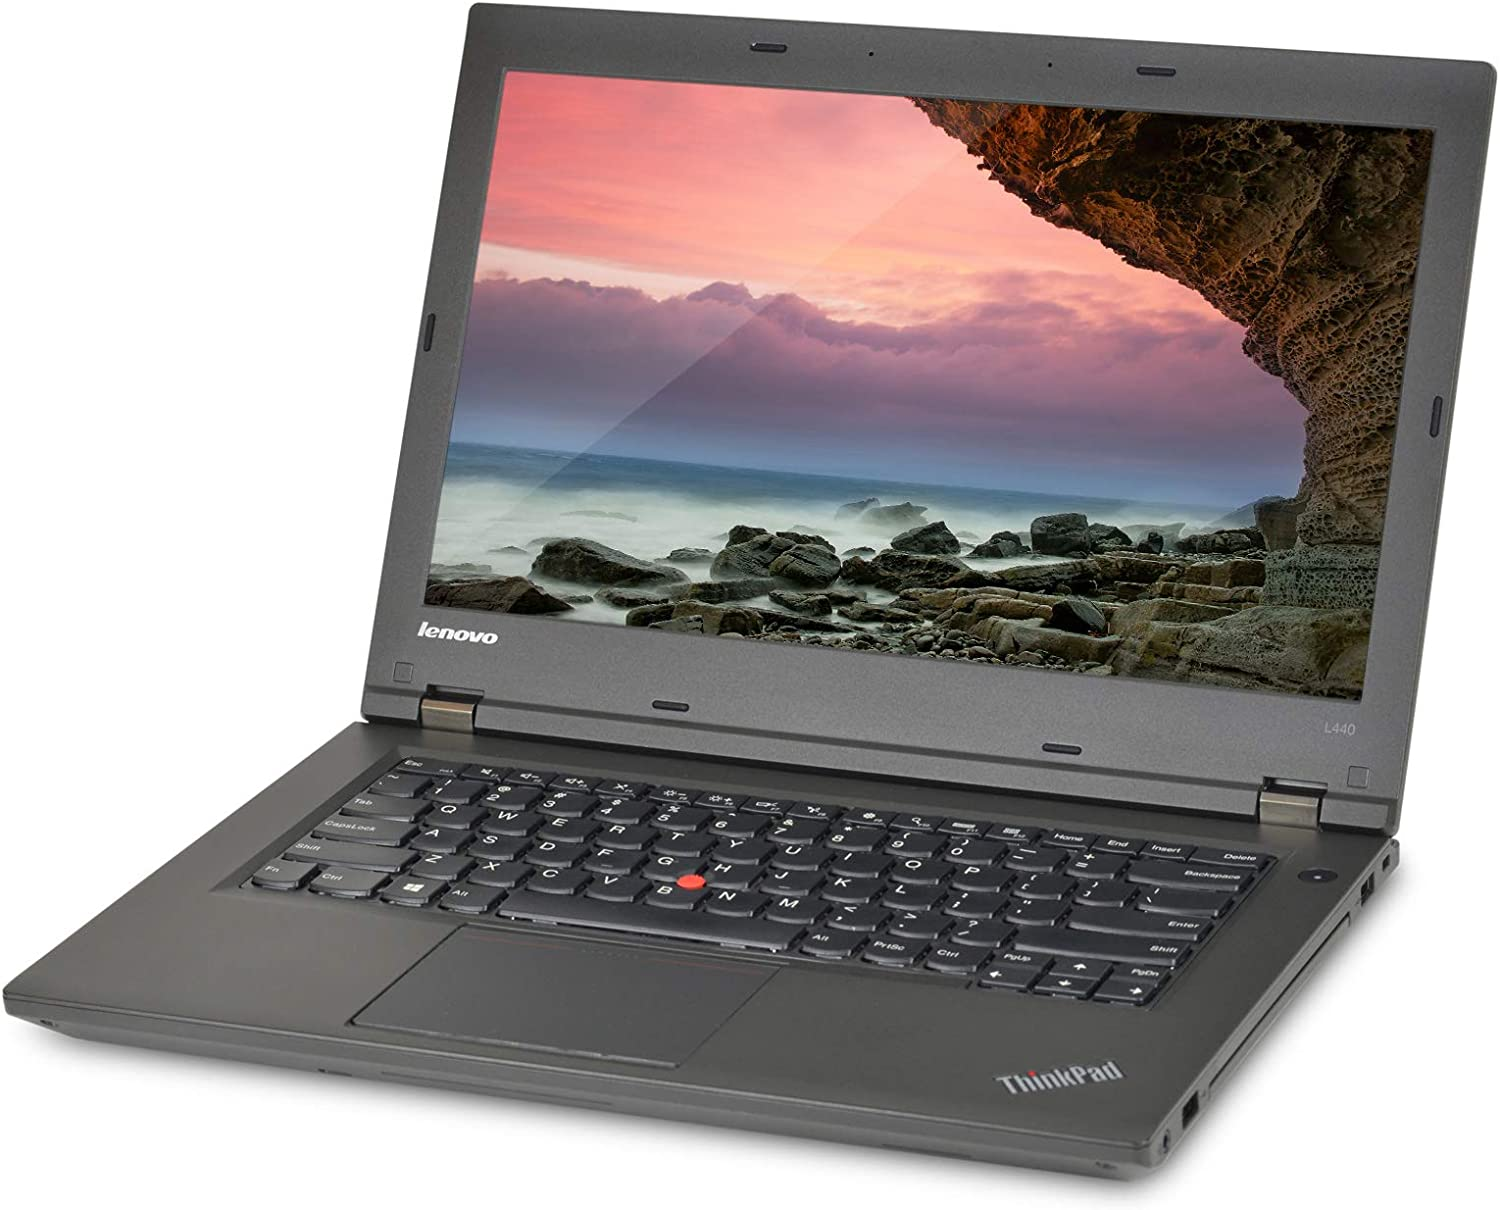 Lenovo ThinkPad L440 14in Laptop, Core i5-4300M 2.6GHz, 8GB Ram, 500GB HDD, Windows 10 Pro 64bit (Renewed)